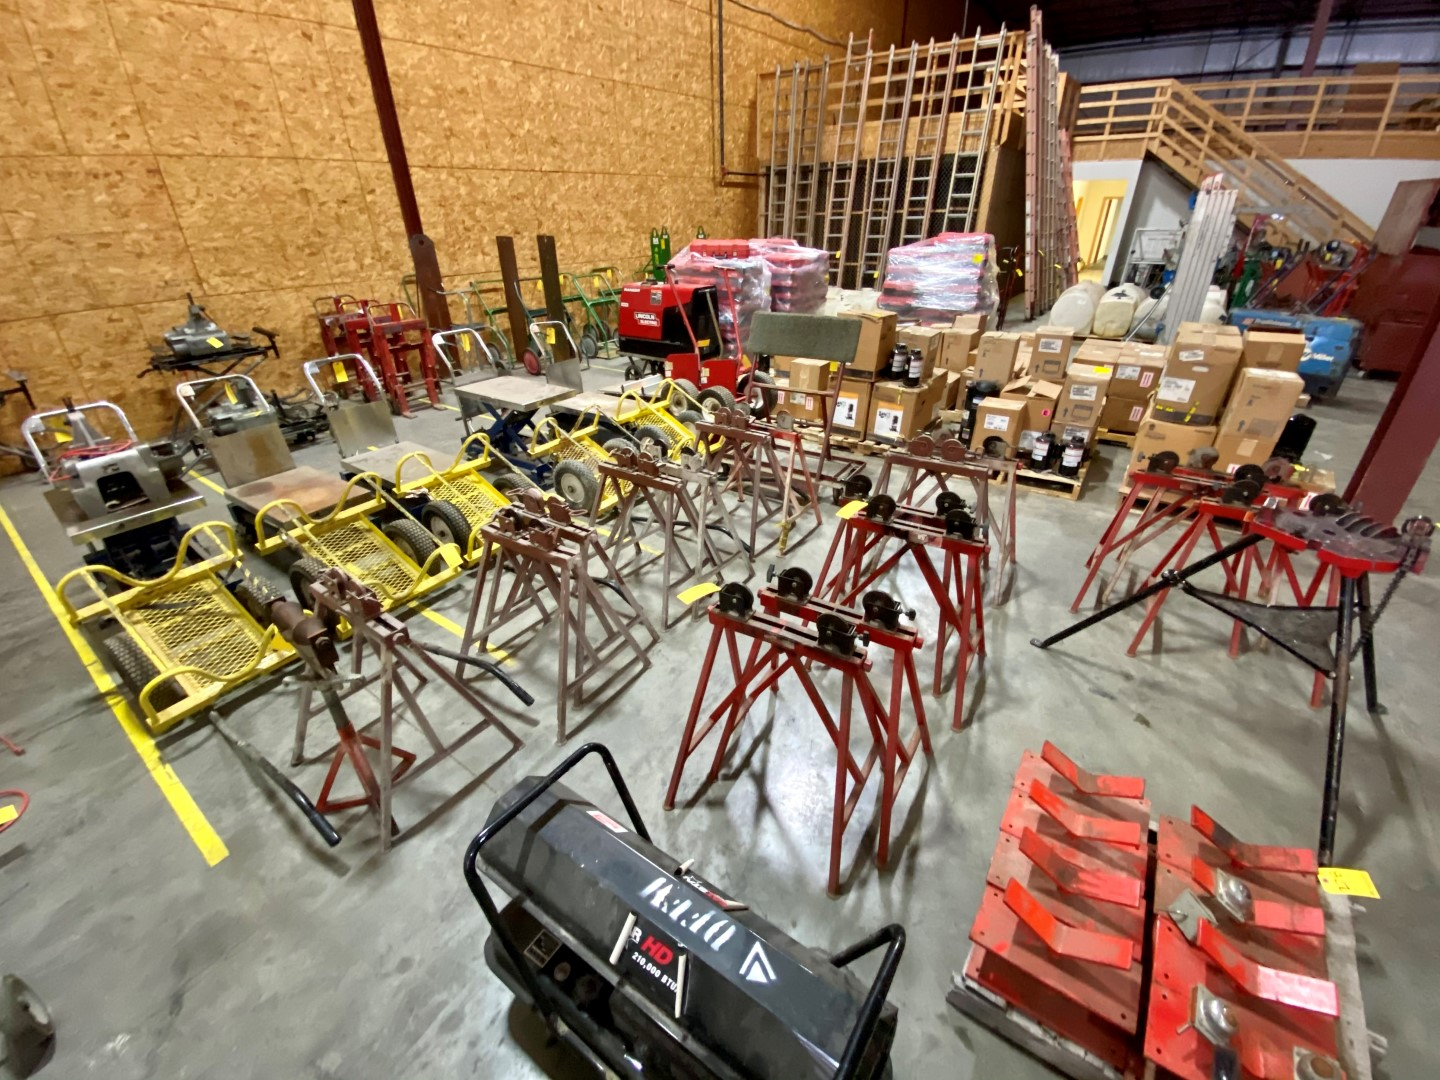 DEEM Excess Mechanical & Electrical Equipment Online Auction In Indianapolis, IN